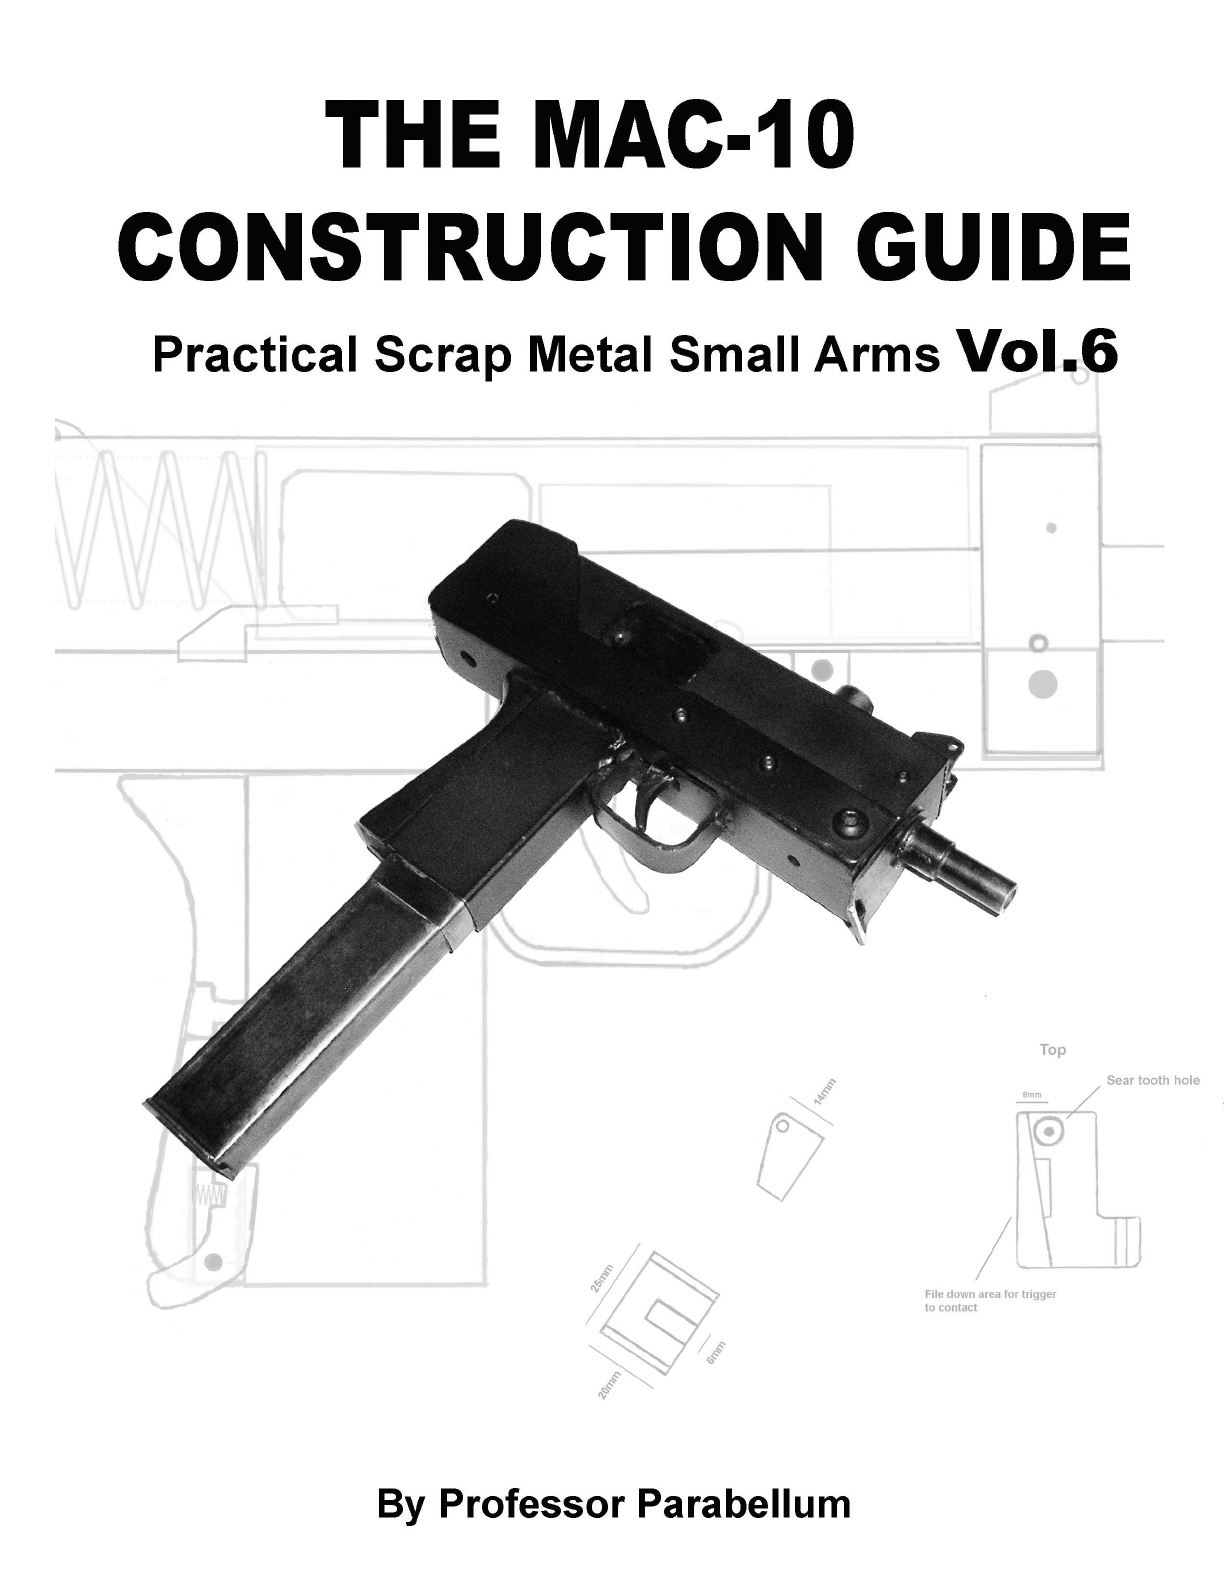 The MAC-10 Construction Guide - Practical Scrap Metal Small Arms Vol 6